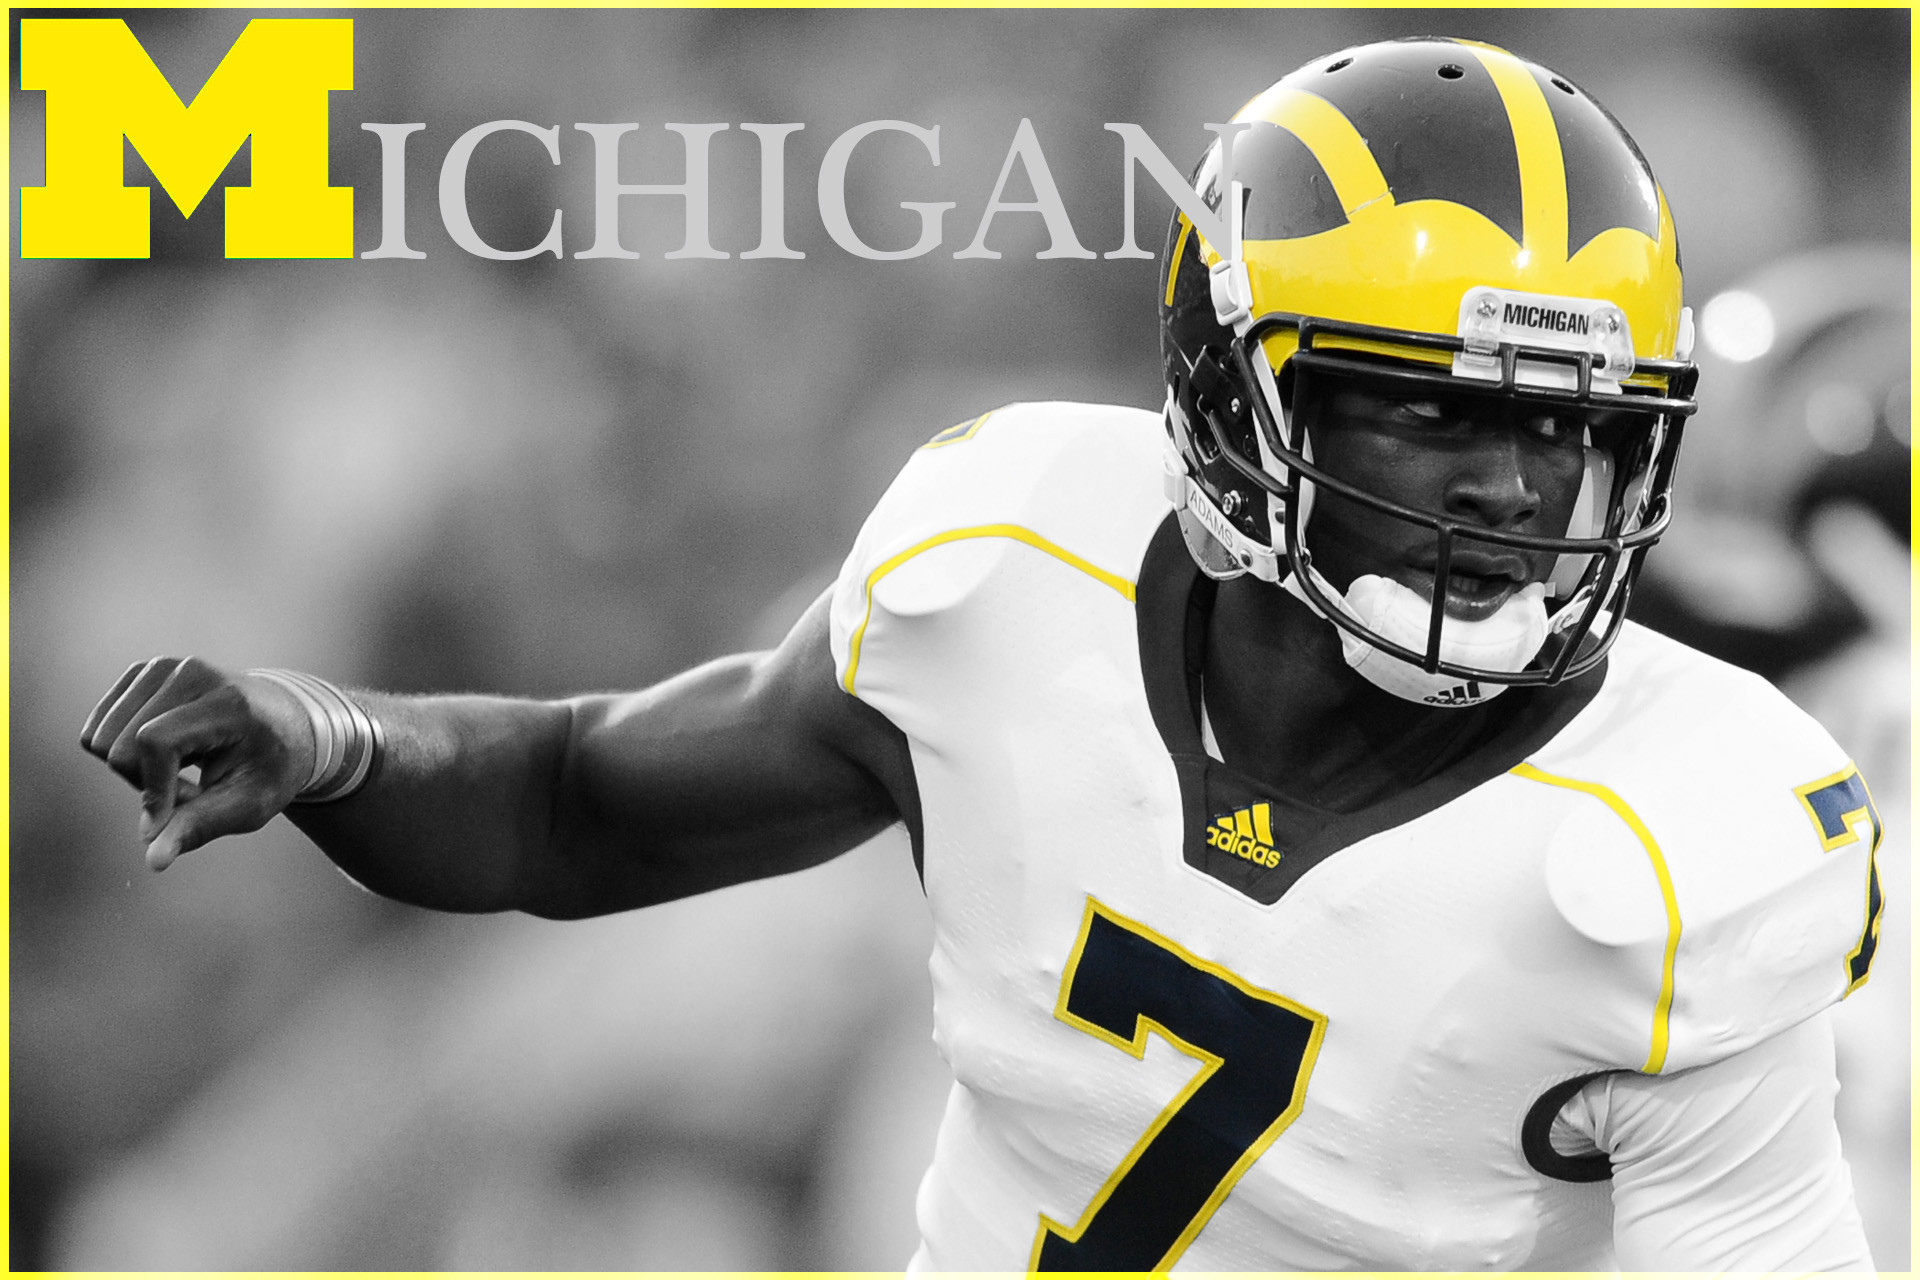 1920x1280 ideas about Michigan Wolverines Football Schedule on 1920×1280 Michigan  Wolverines Football Wallpapers (34